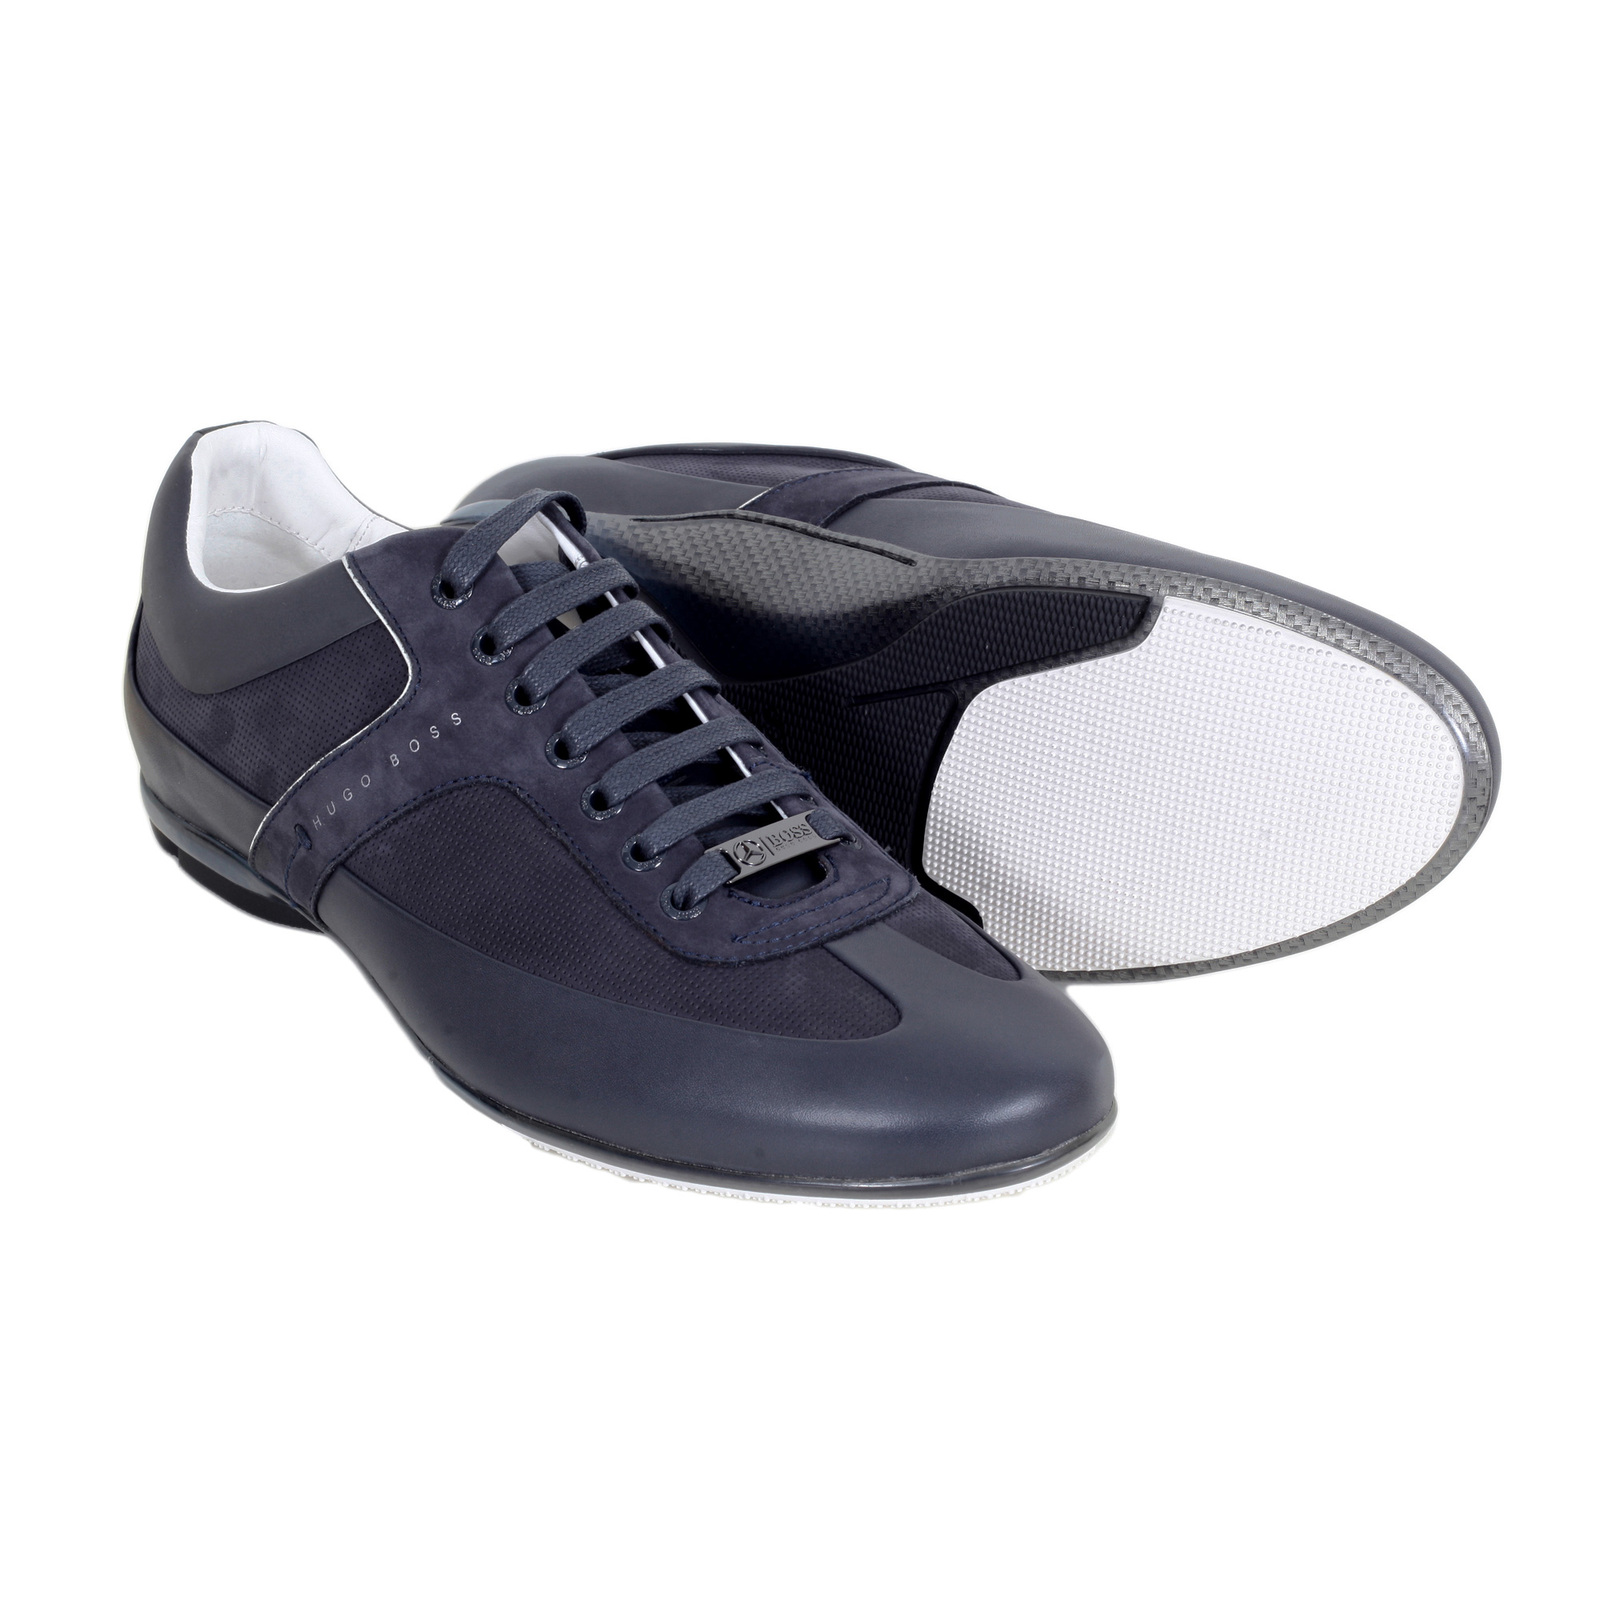 0bfd49011 Hugo Boss Black Merceso Mercedes Leather Trainers in Dark Blue with Leather  and Suede Trim BOSS5844